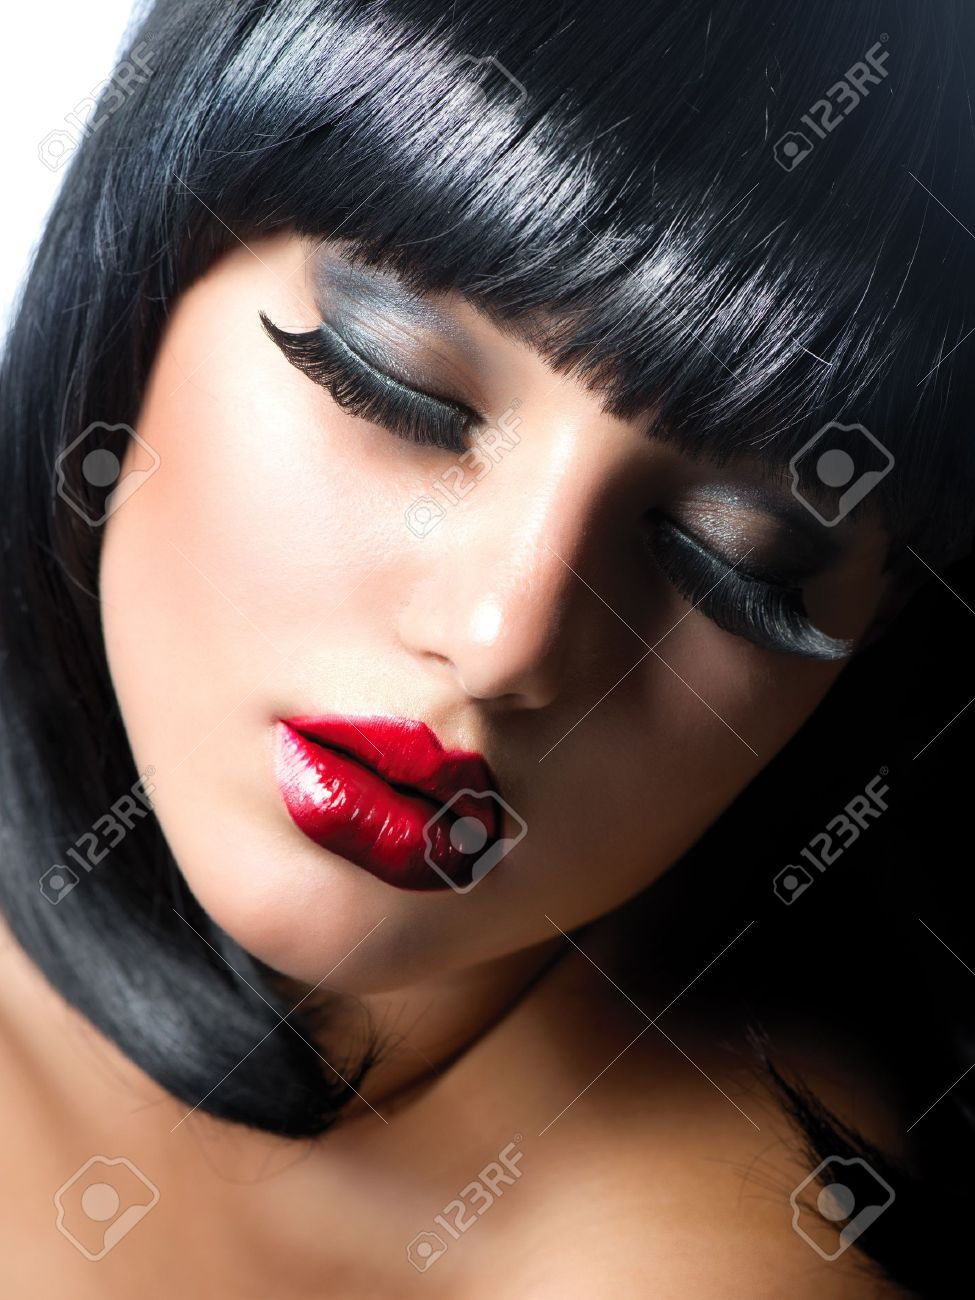 Sexy Woman  Brunette Girl with Extreme Makeup  Vamp Style Stock Photo - 16052332